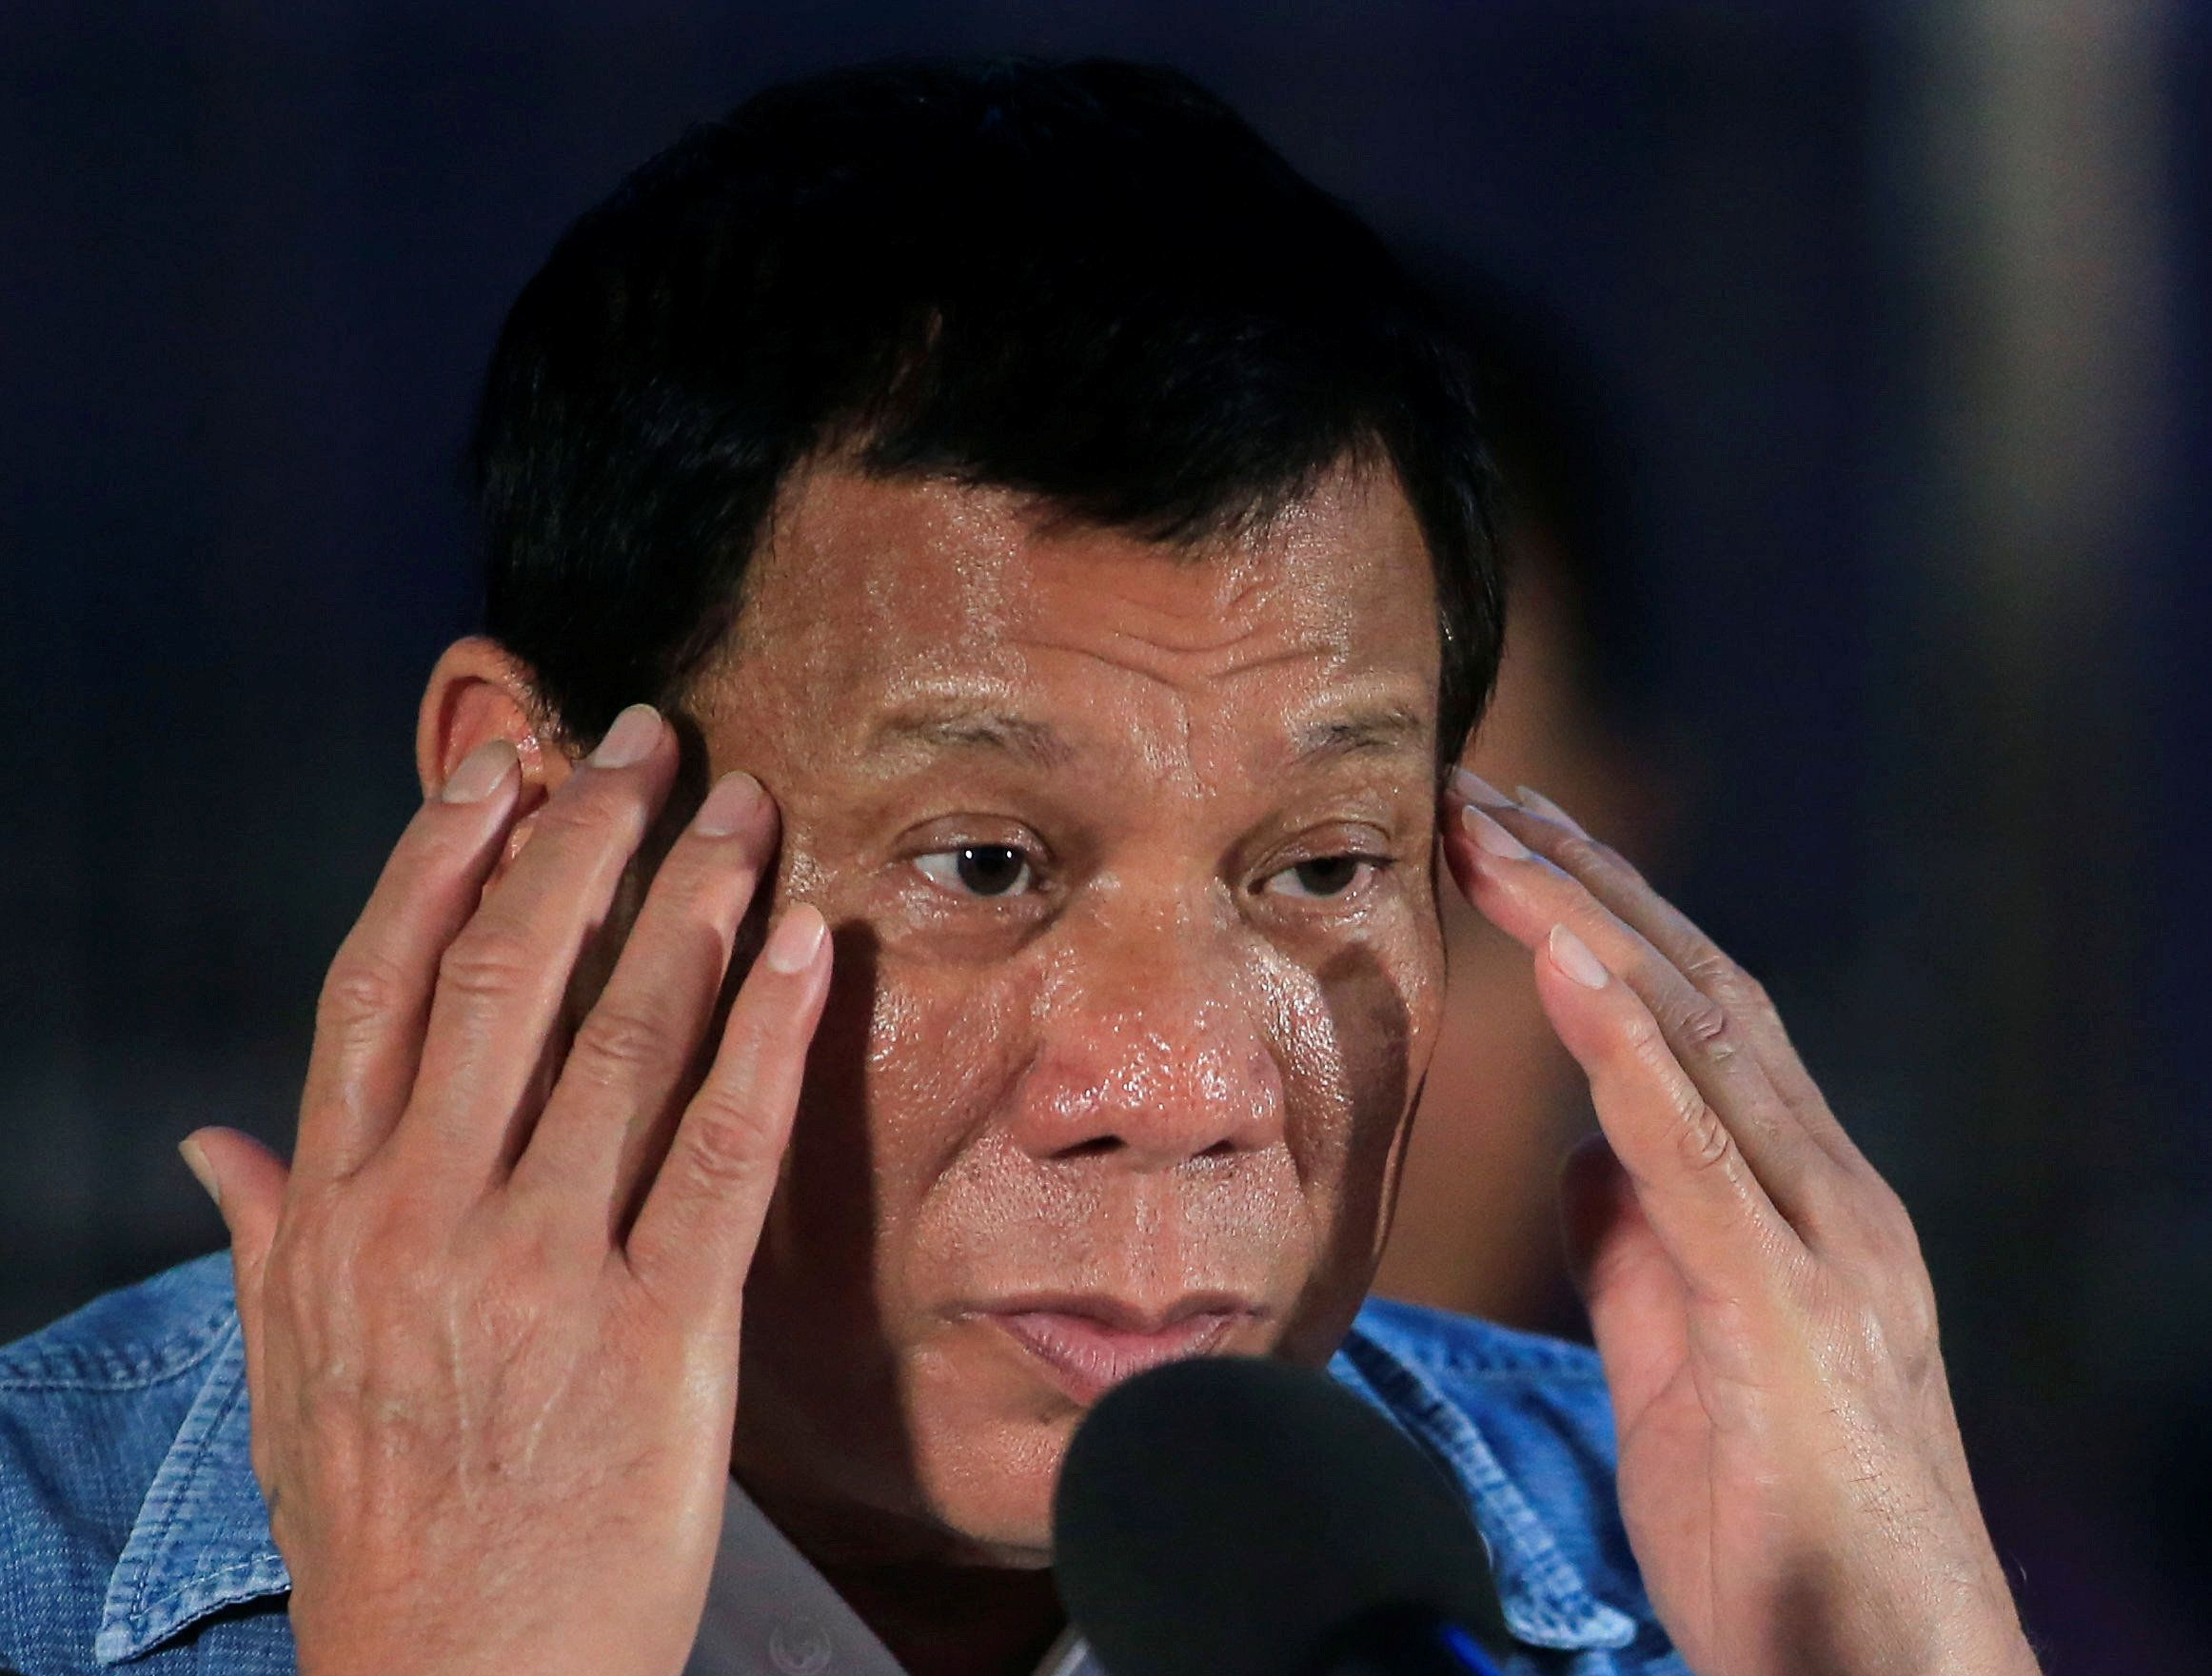 President Rodrigo Duterte has a history of joking about sexual violence against